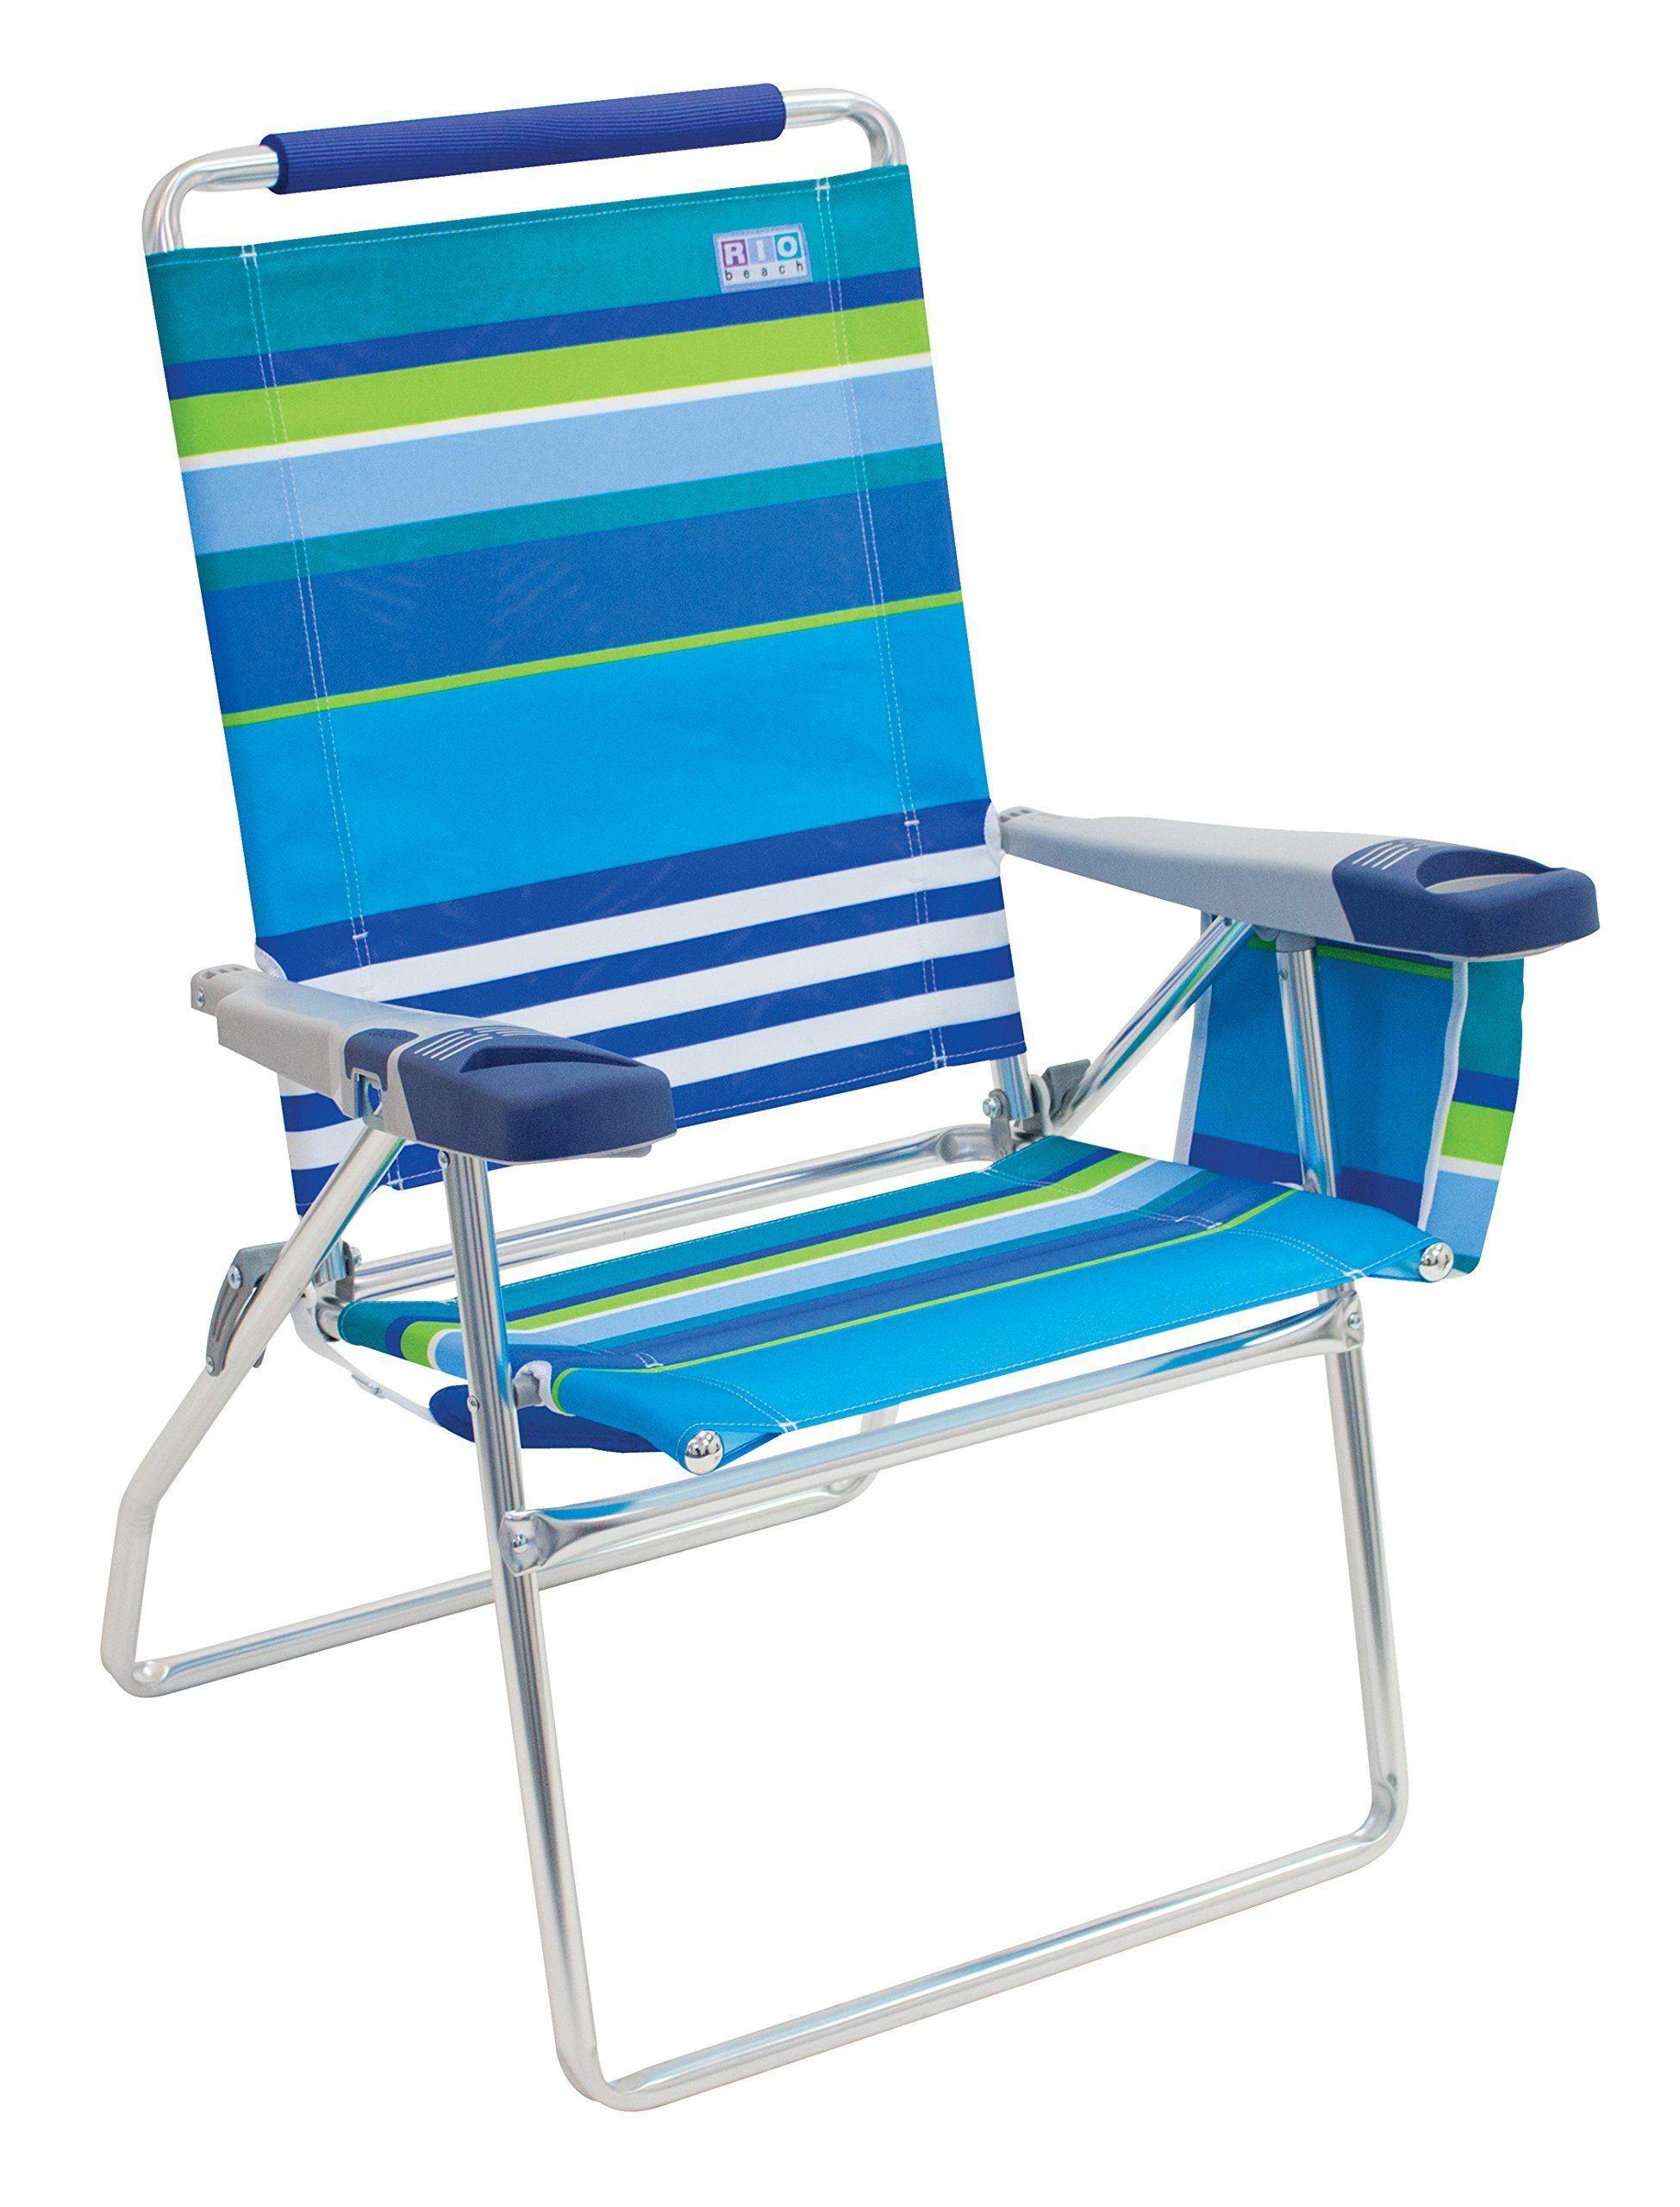 Rio Beach 17 Quot Extended Height 4 Position Folding Beach Chair Folding Beach Chair Beach Chairs High Beach Chairs